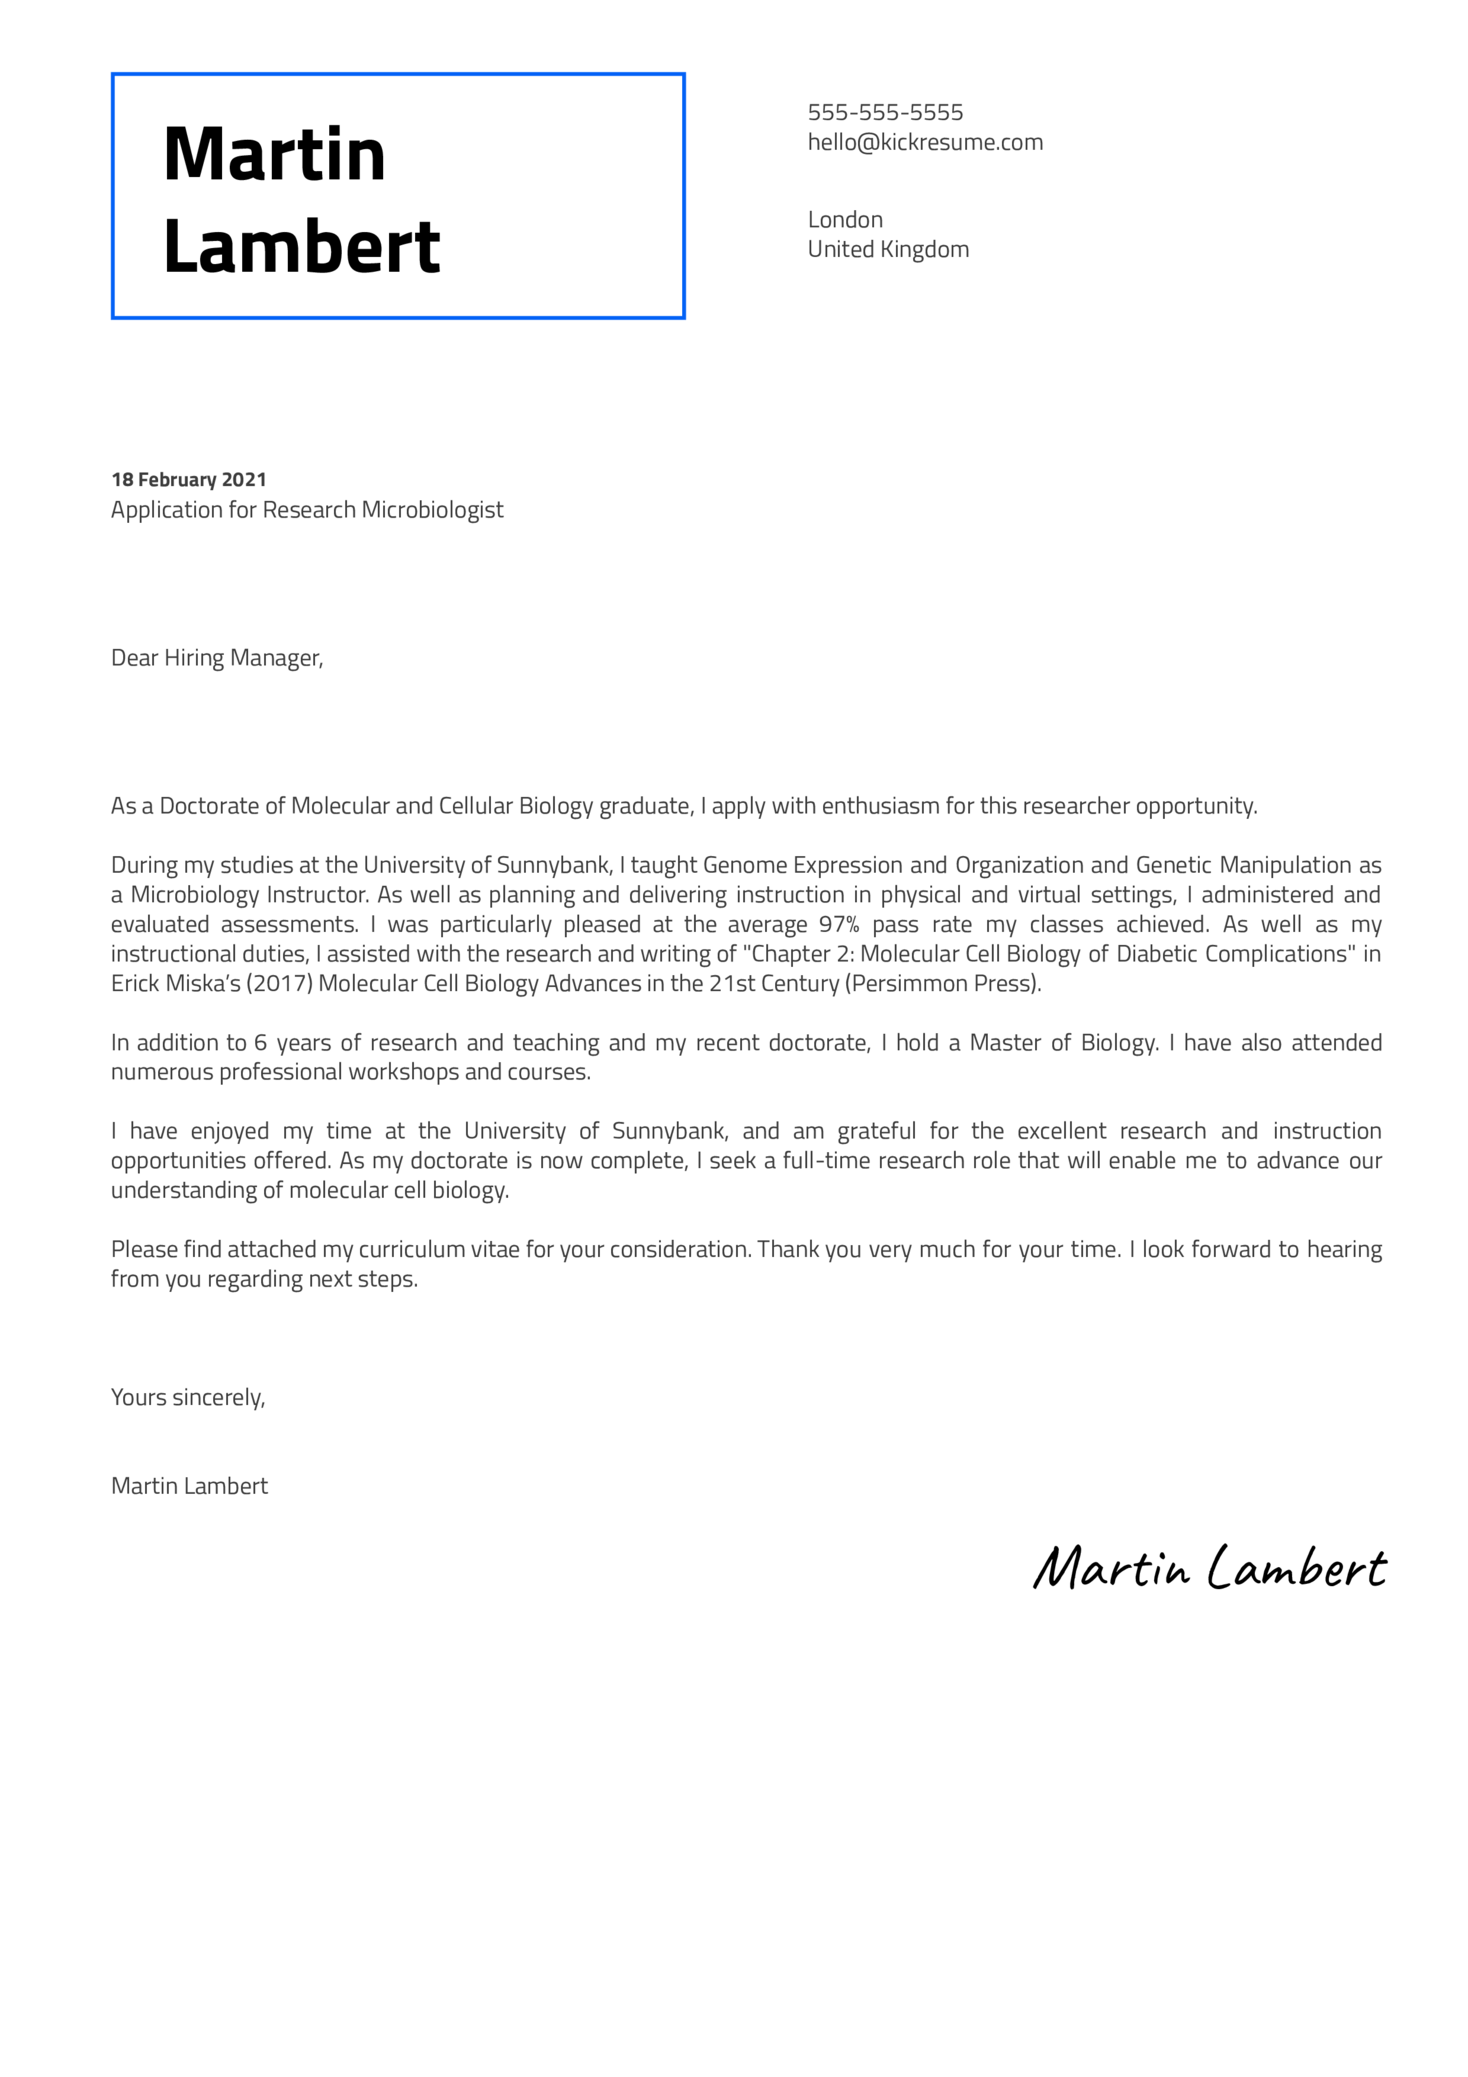 Research Microbiologist Cover Letter Sample